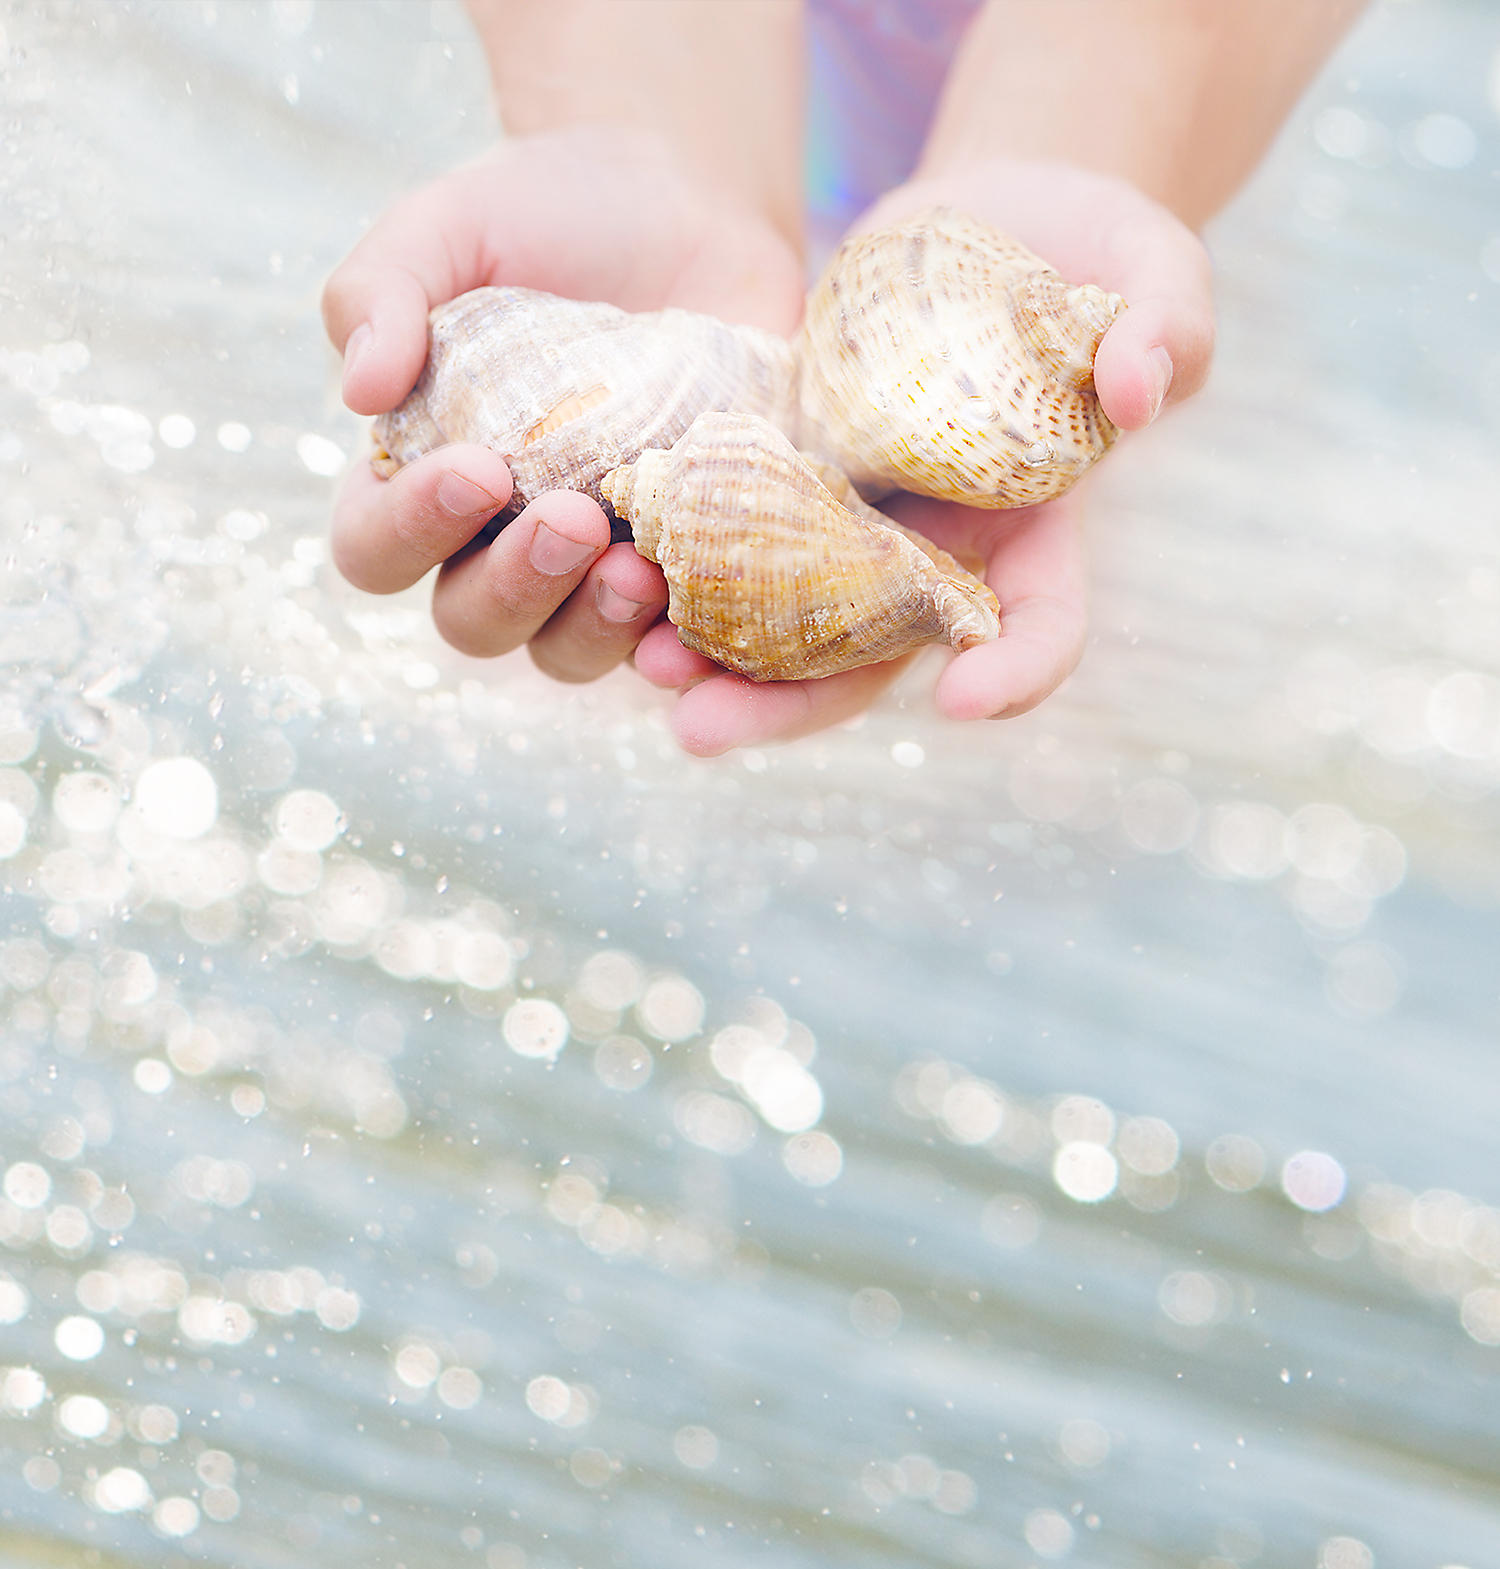 Child holding shells in their hands